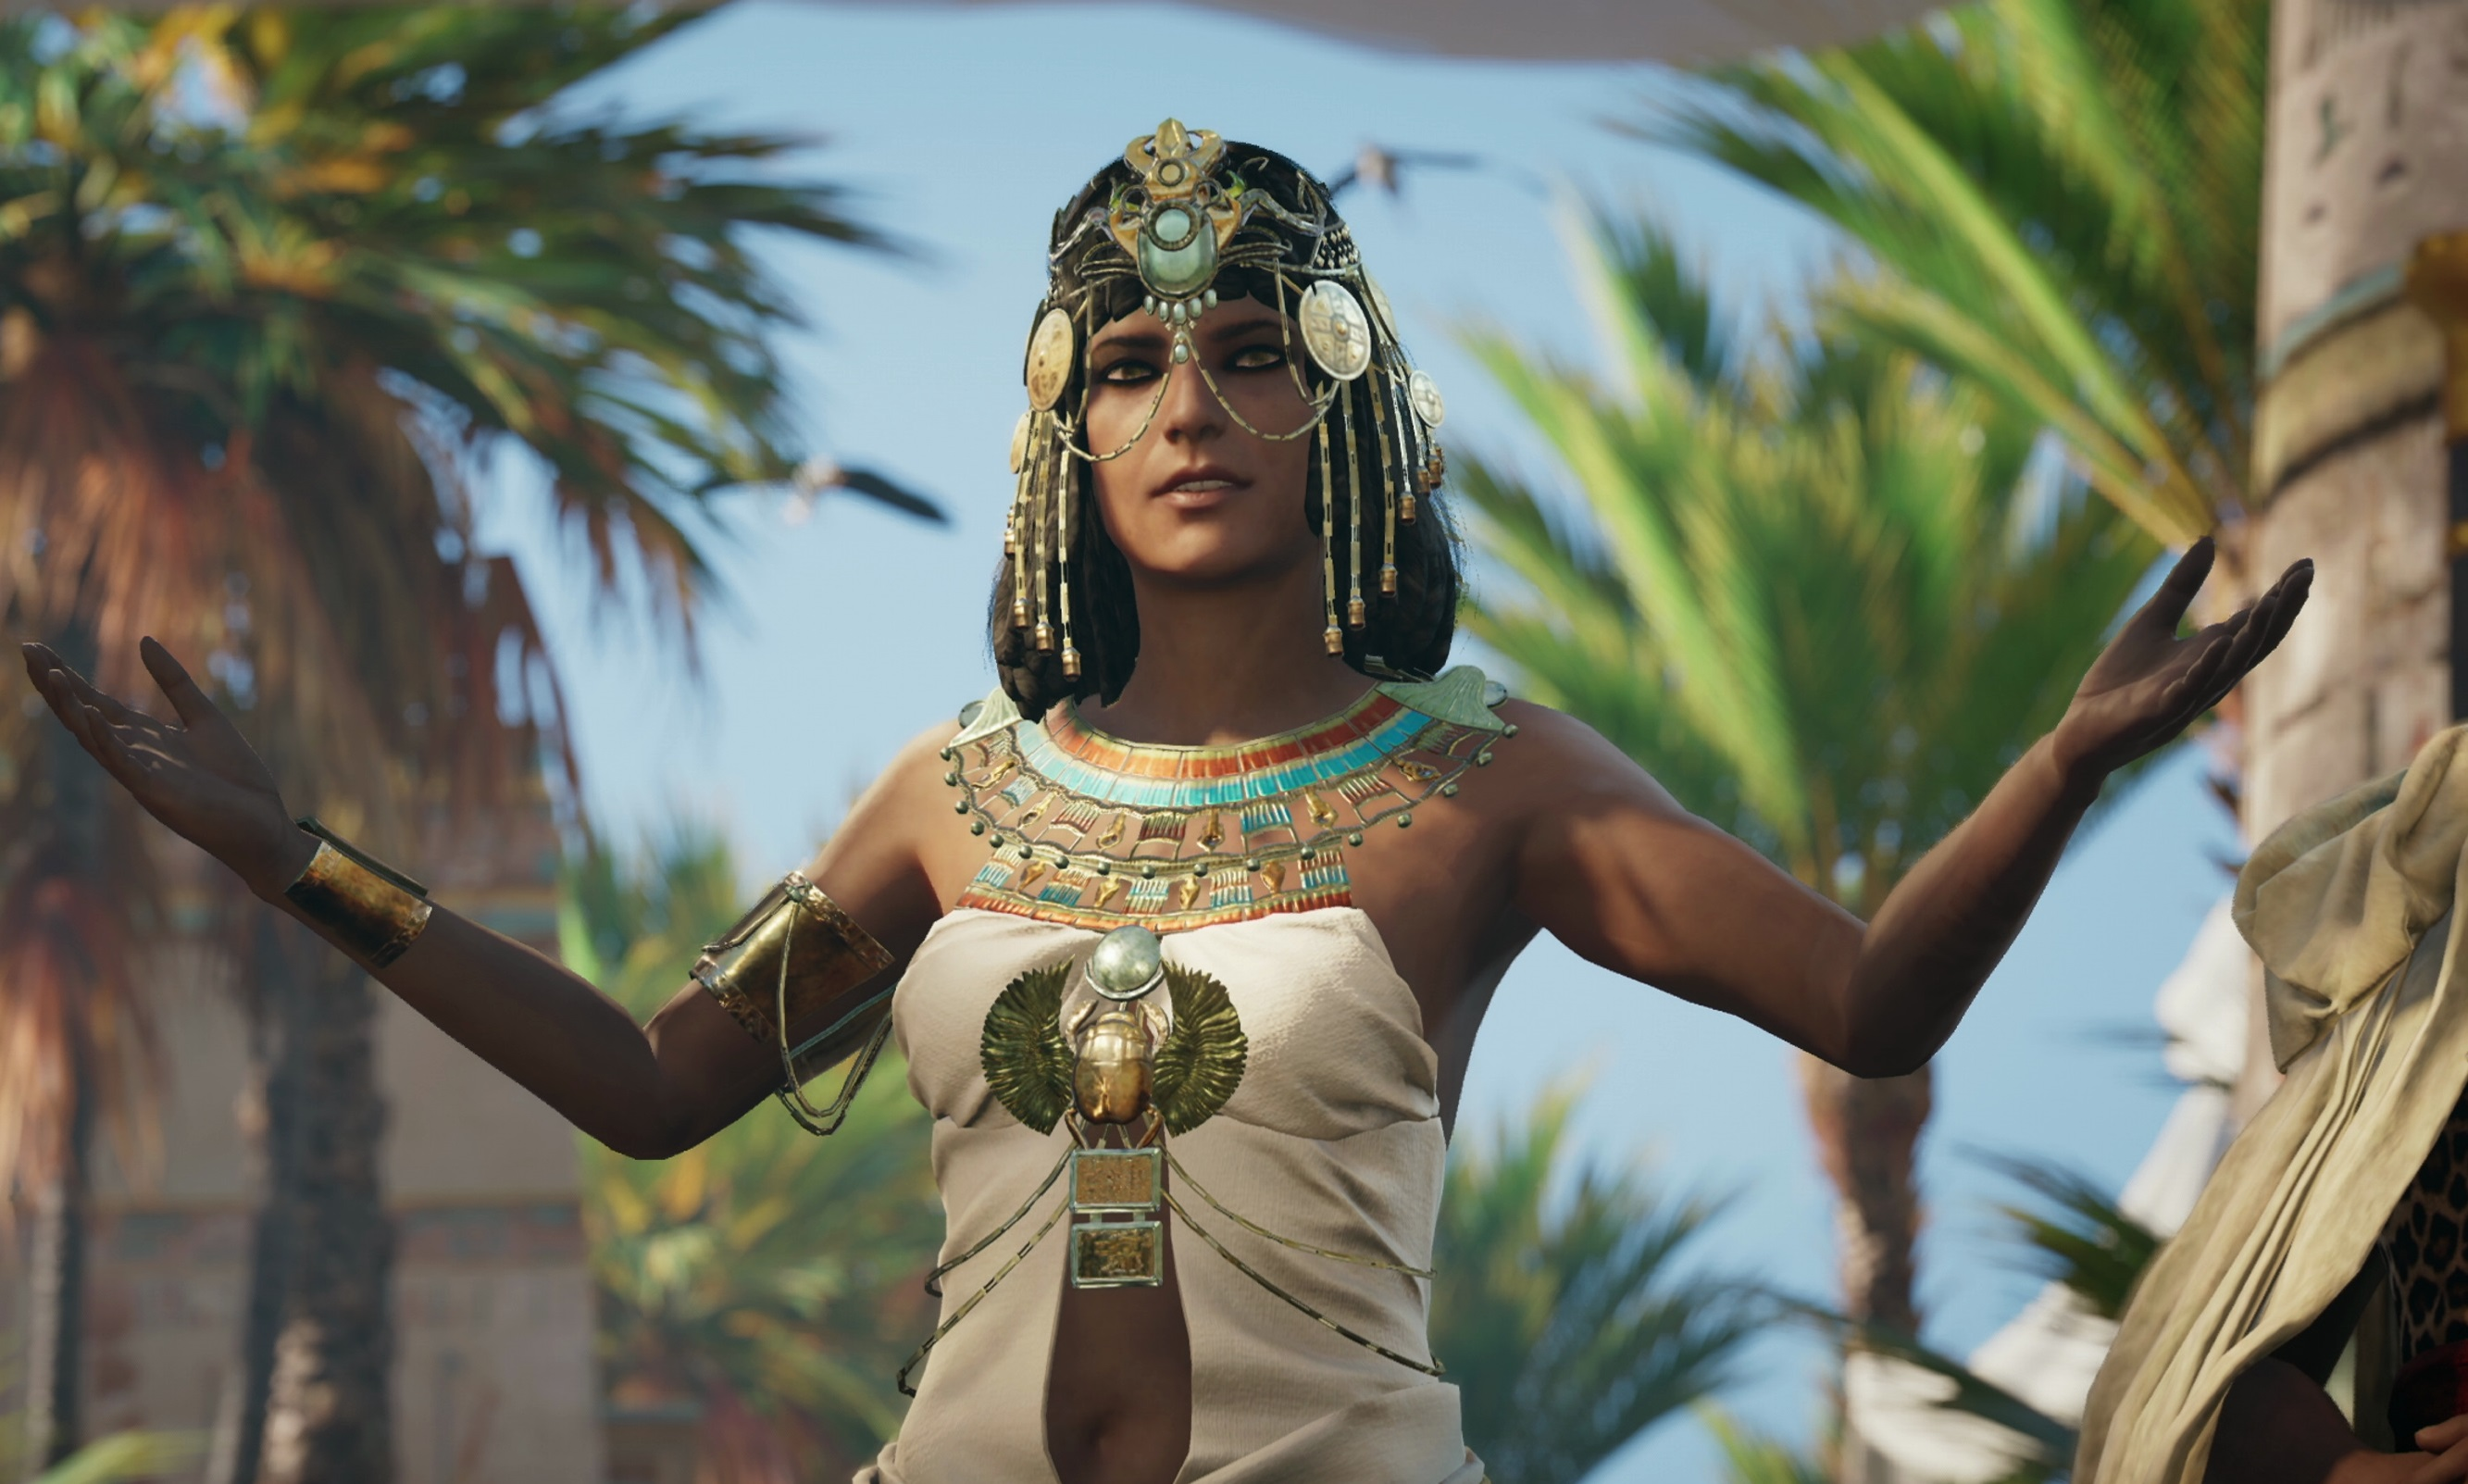 Assassin's Creed Origins' promiscuous Cleopatra is just plain wrong